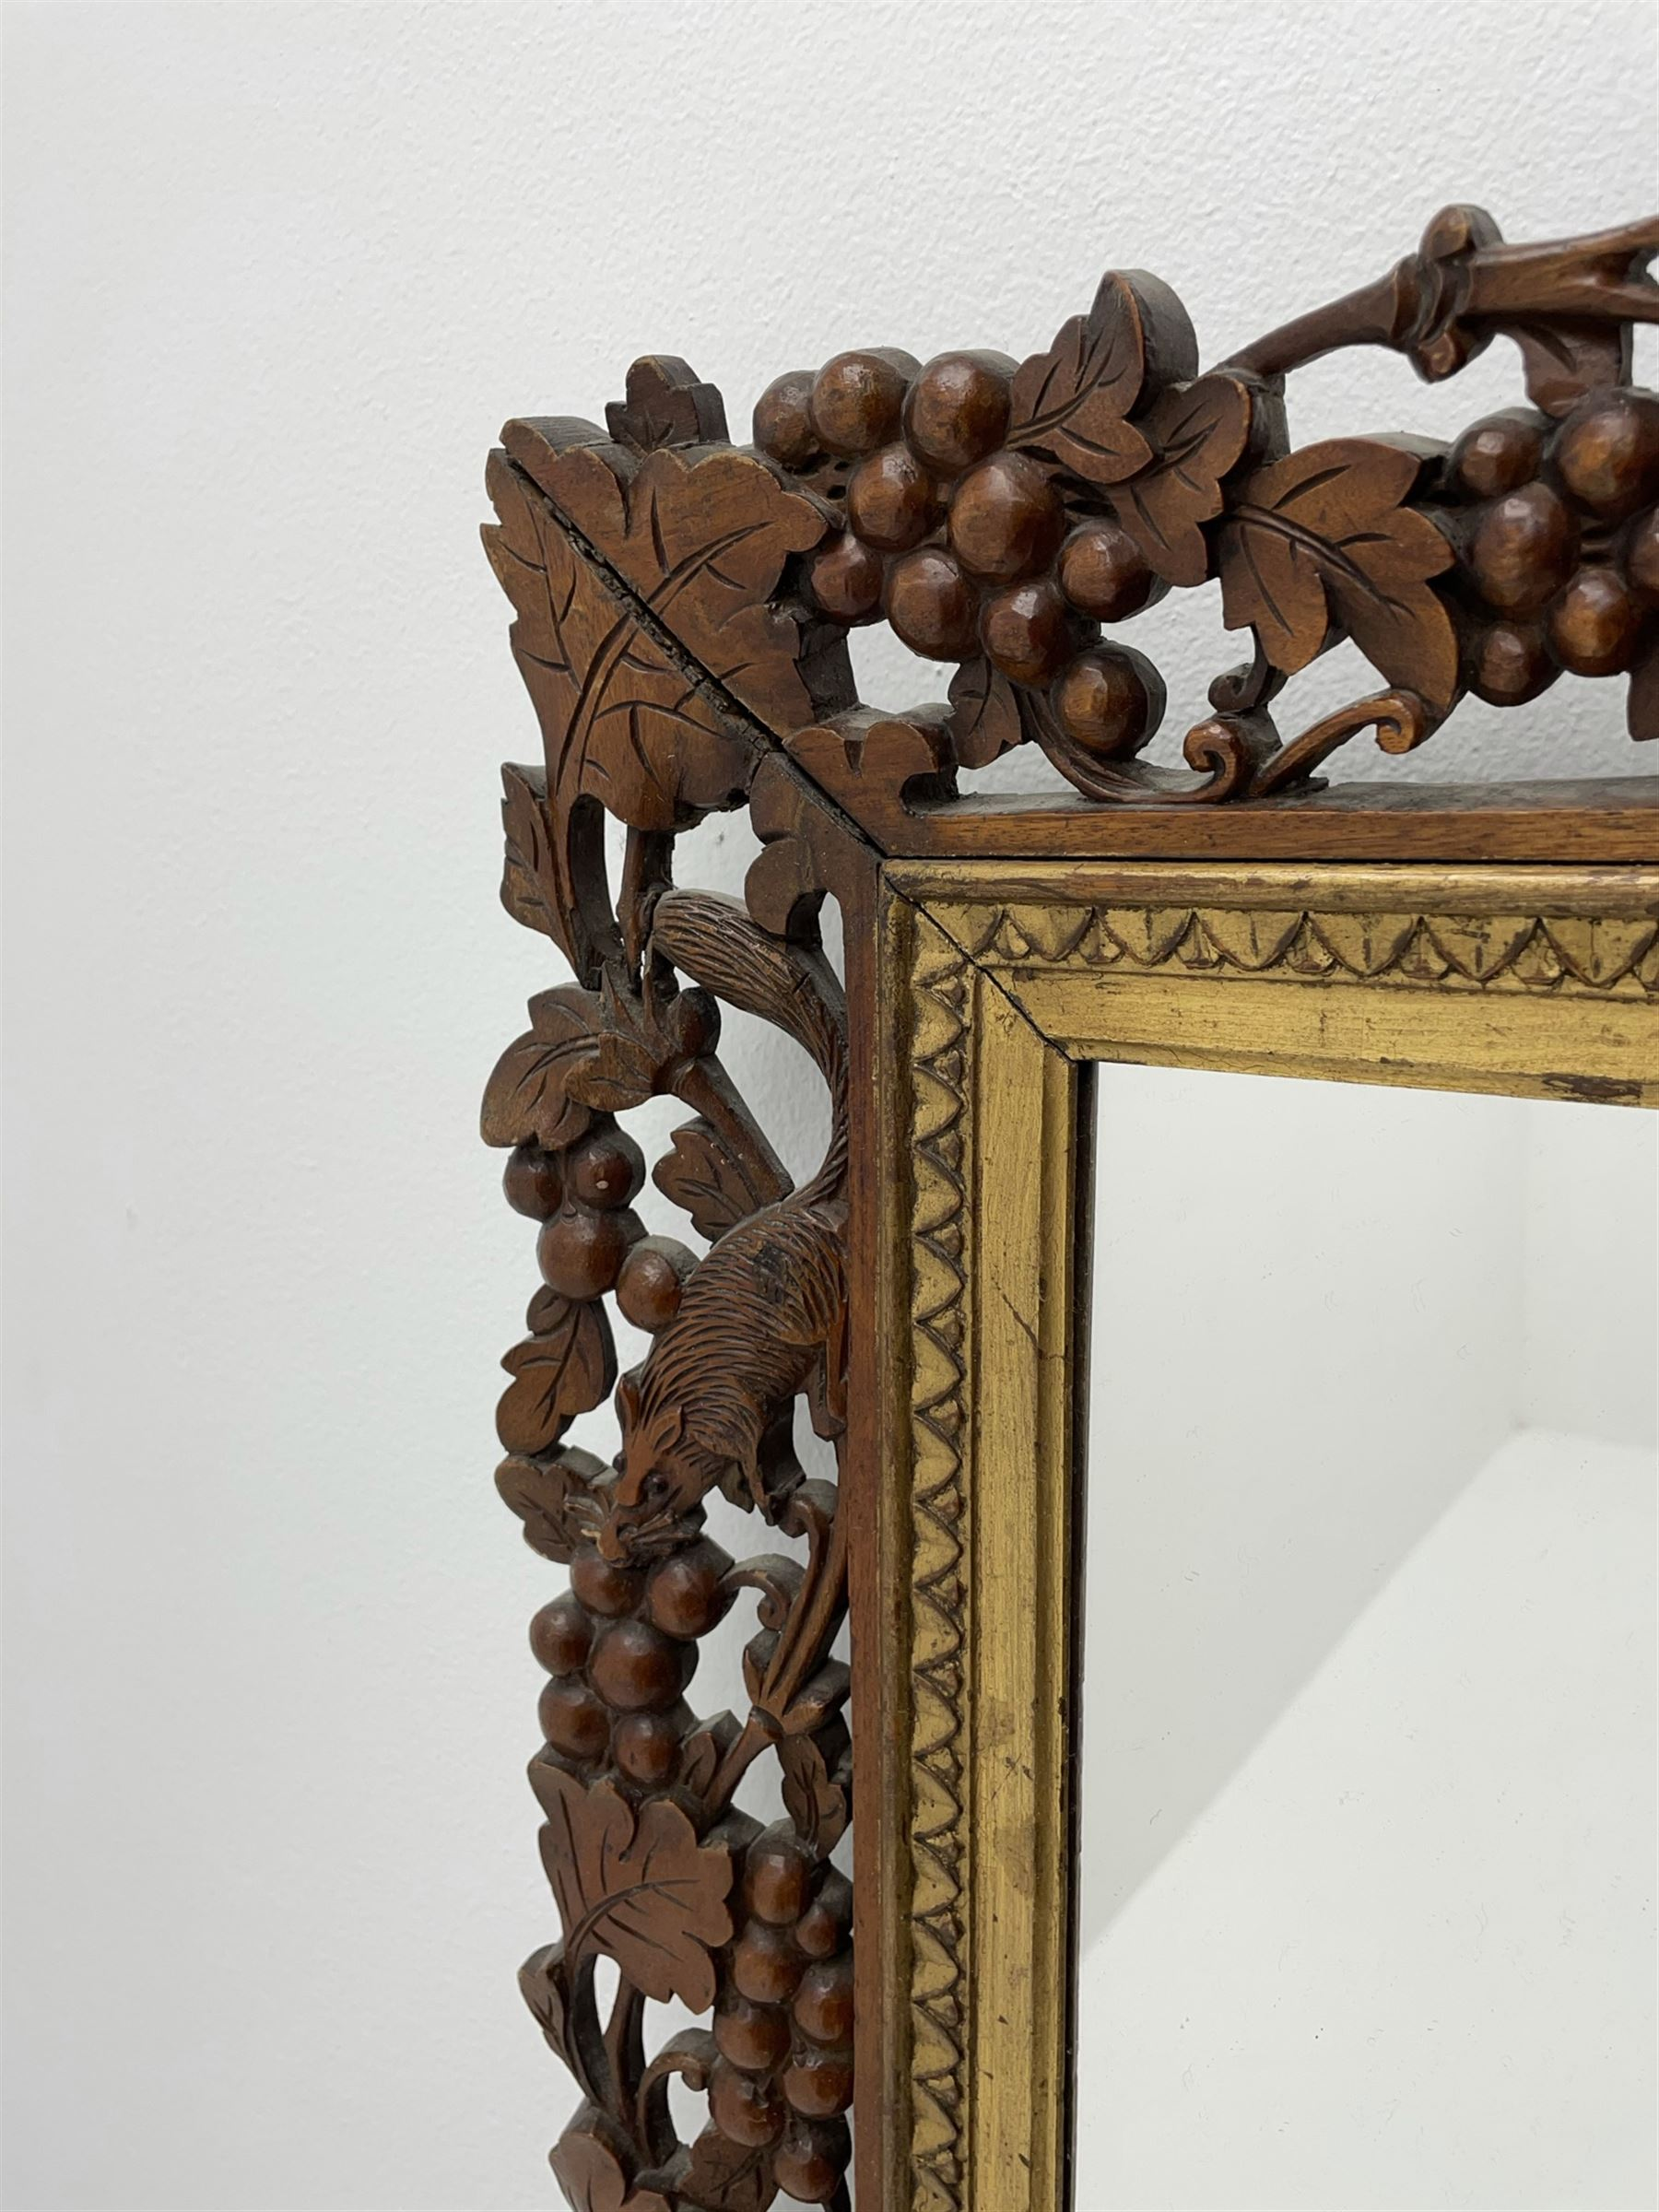 20th century rectangular wall mirror in walnut frame carved and pierced with foliage and berry decor - Image 2 of 4